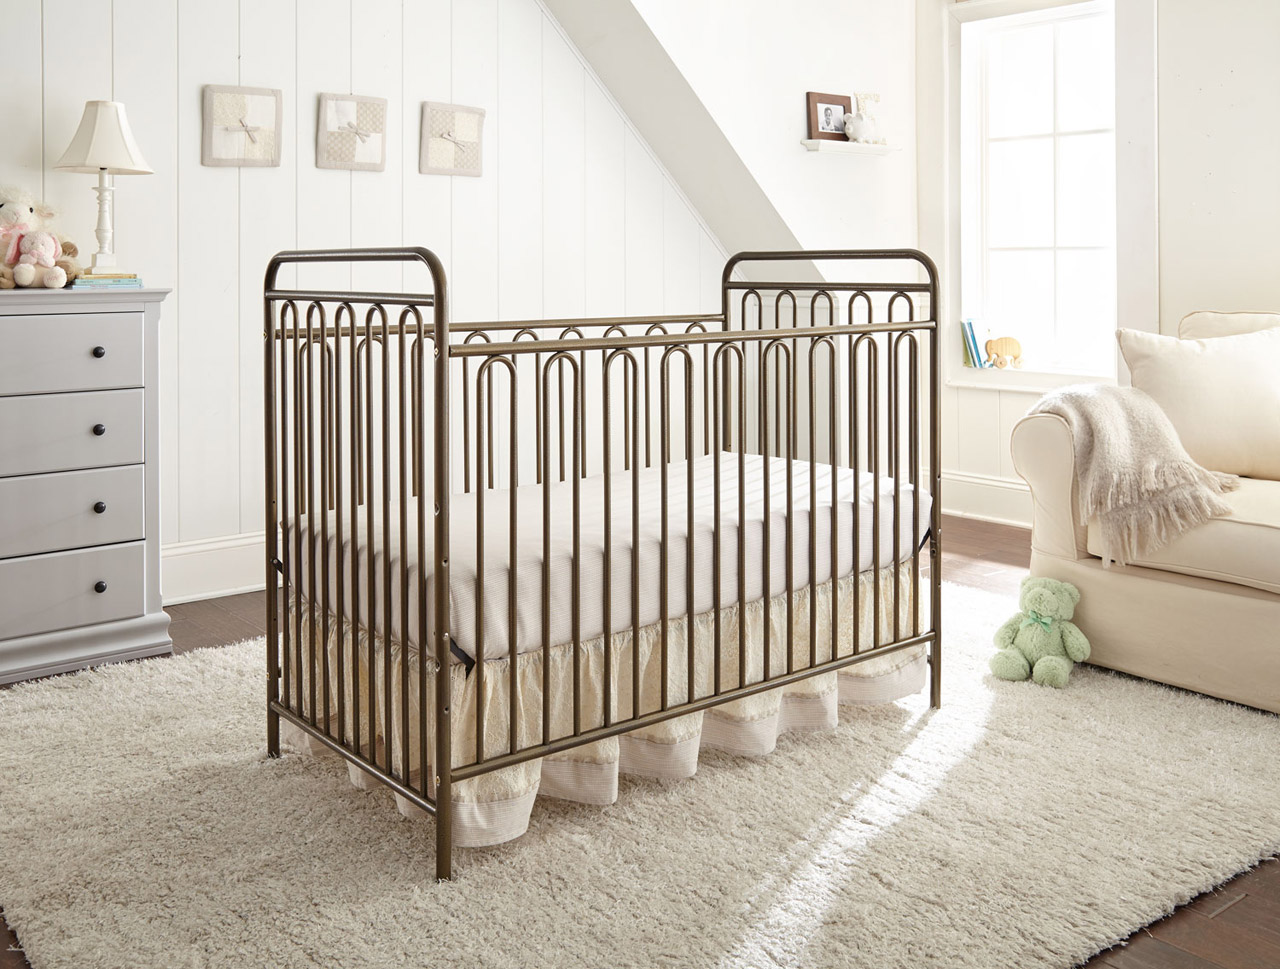 The Trinity 3 In 1 Full Sized Metal Crib, In A Classic Hoop Design With The  Golden Nugget Textured Finish, Is A Welcome Addition To Any Room Decor.